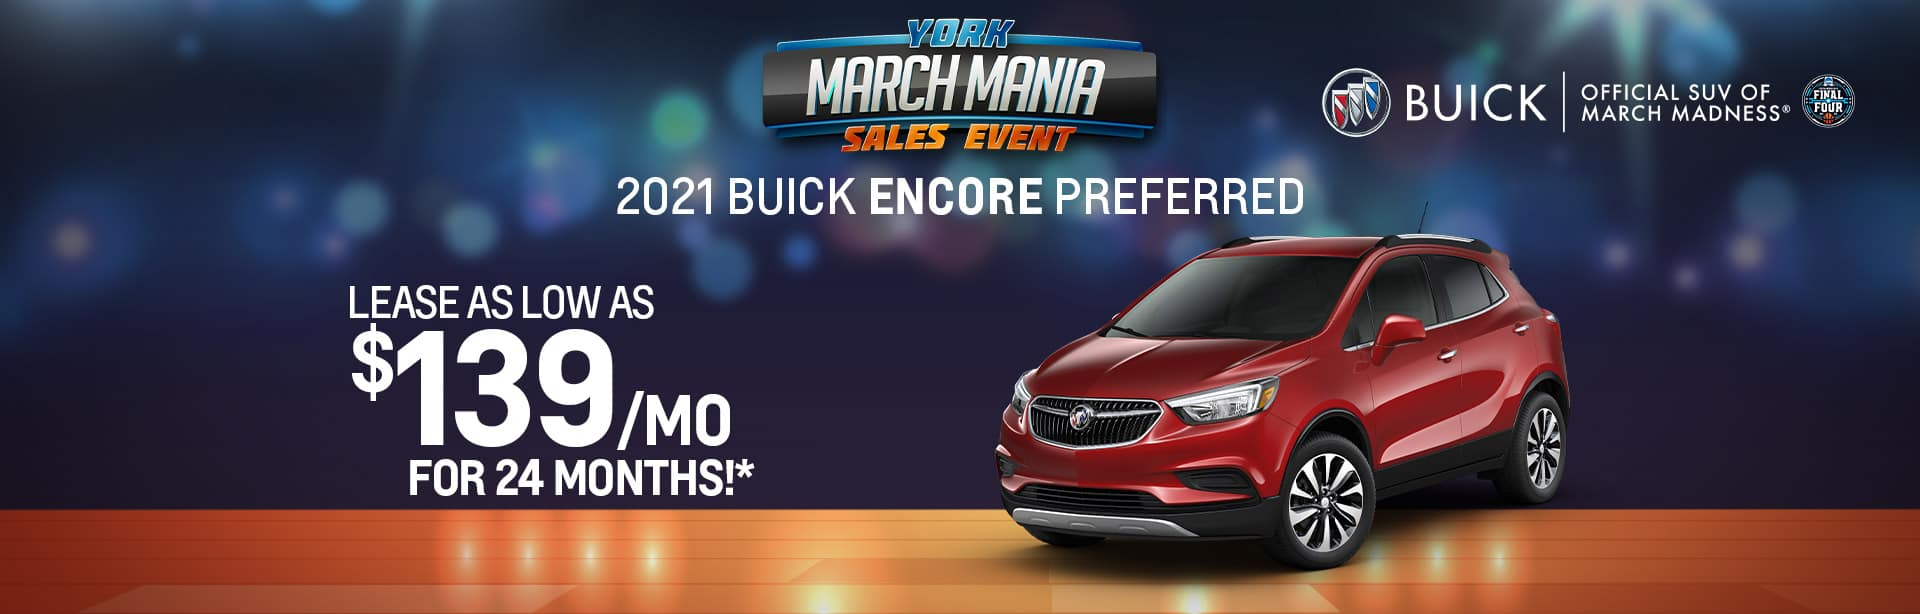 Best lease offer on a new 2021 Buick Encore near Indianapolis IN